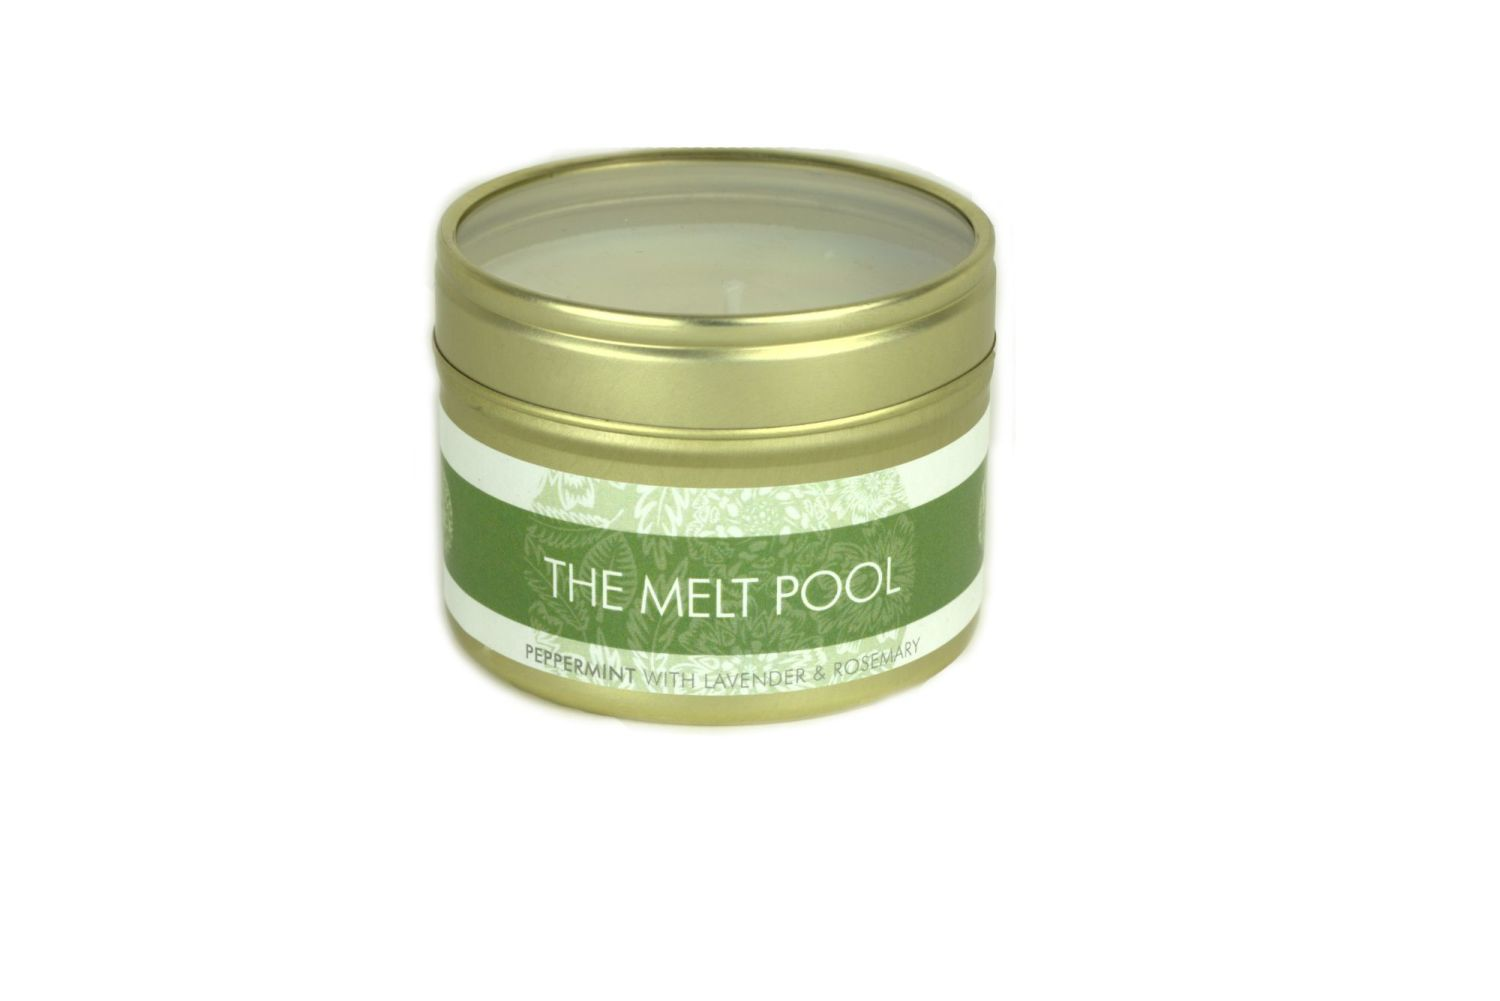 The Melt Pool Small Tin: Peppermint, Lavender & Rosemary